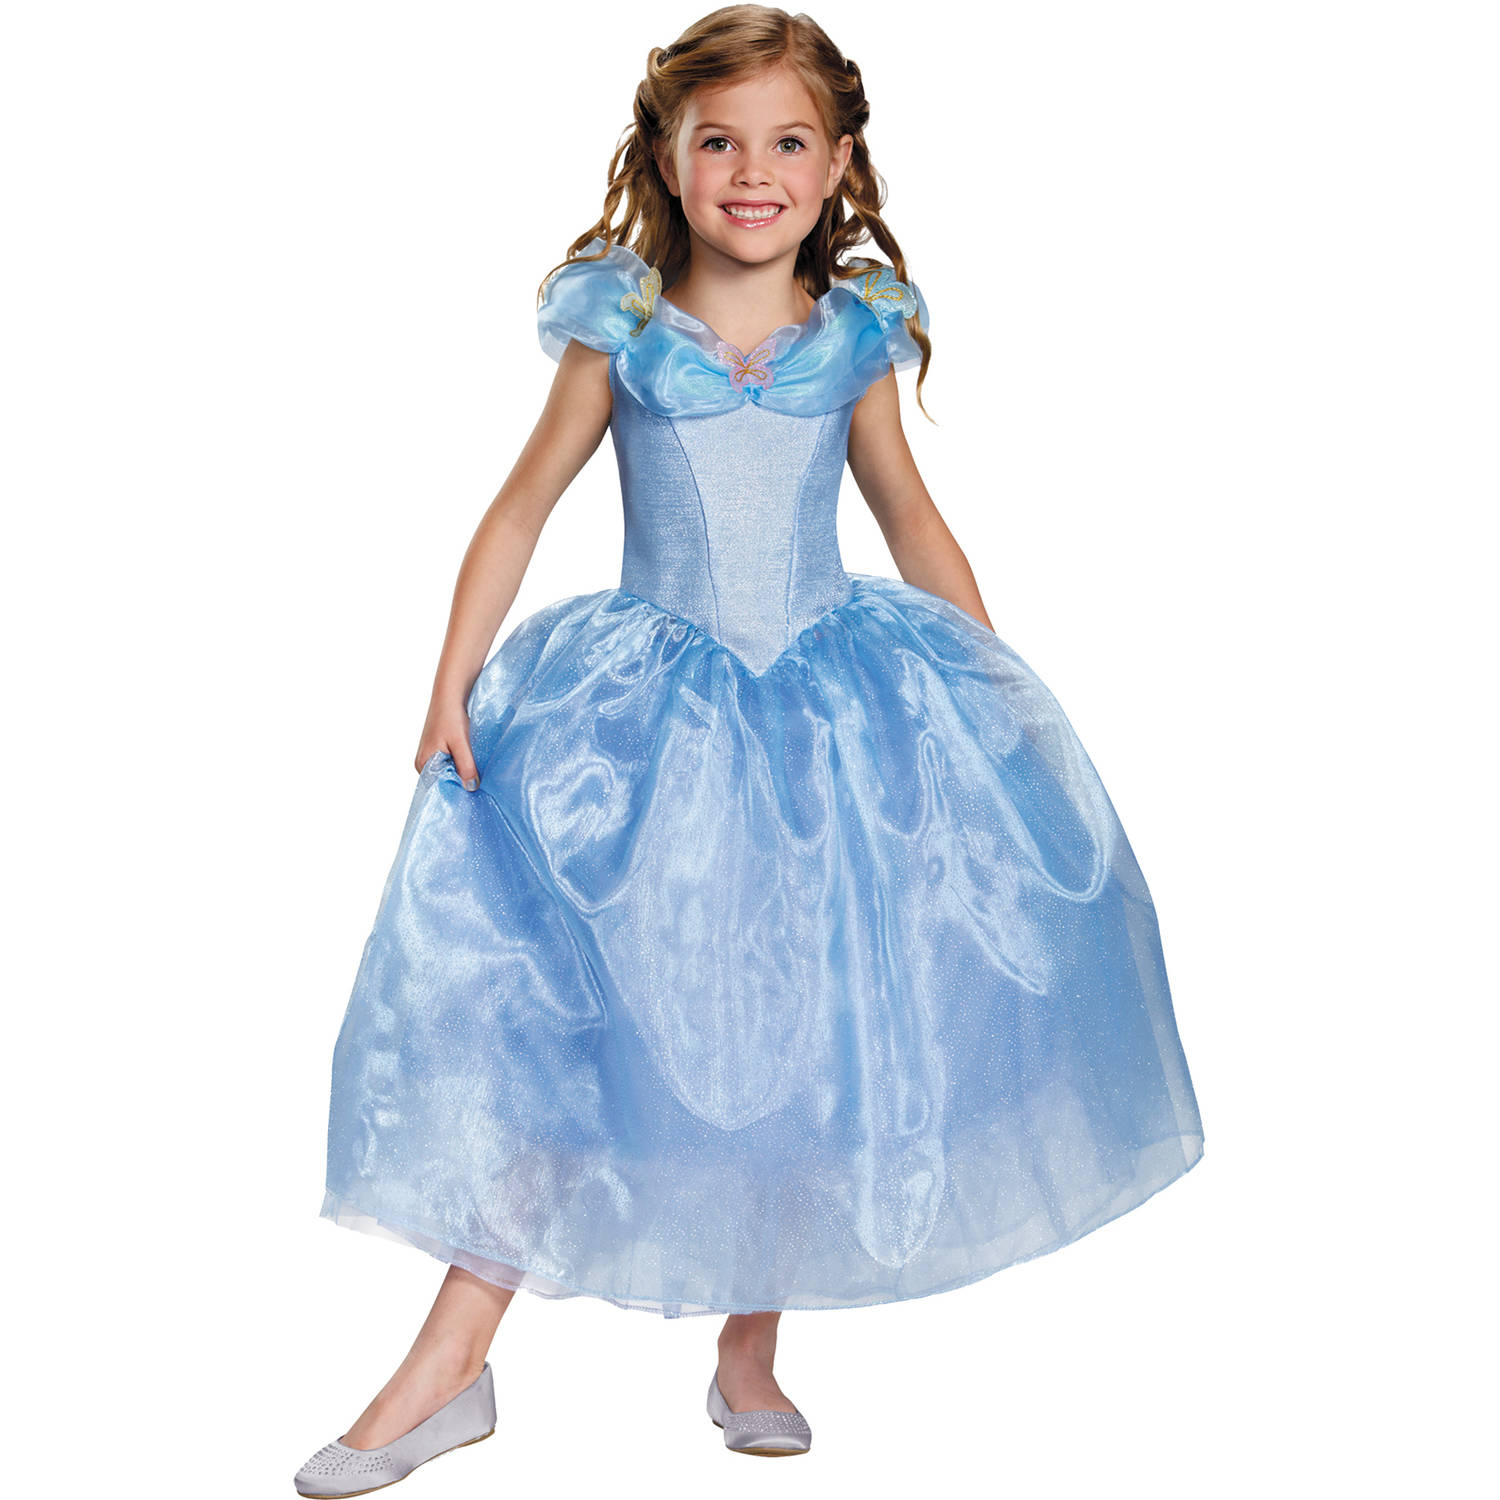 Cinderella Movie Deluxe Child Halloween Costume